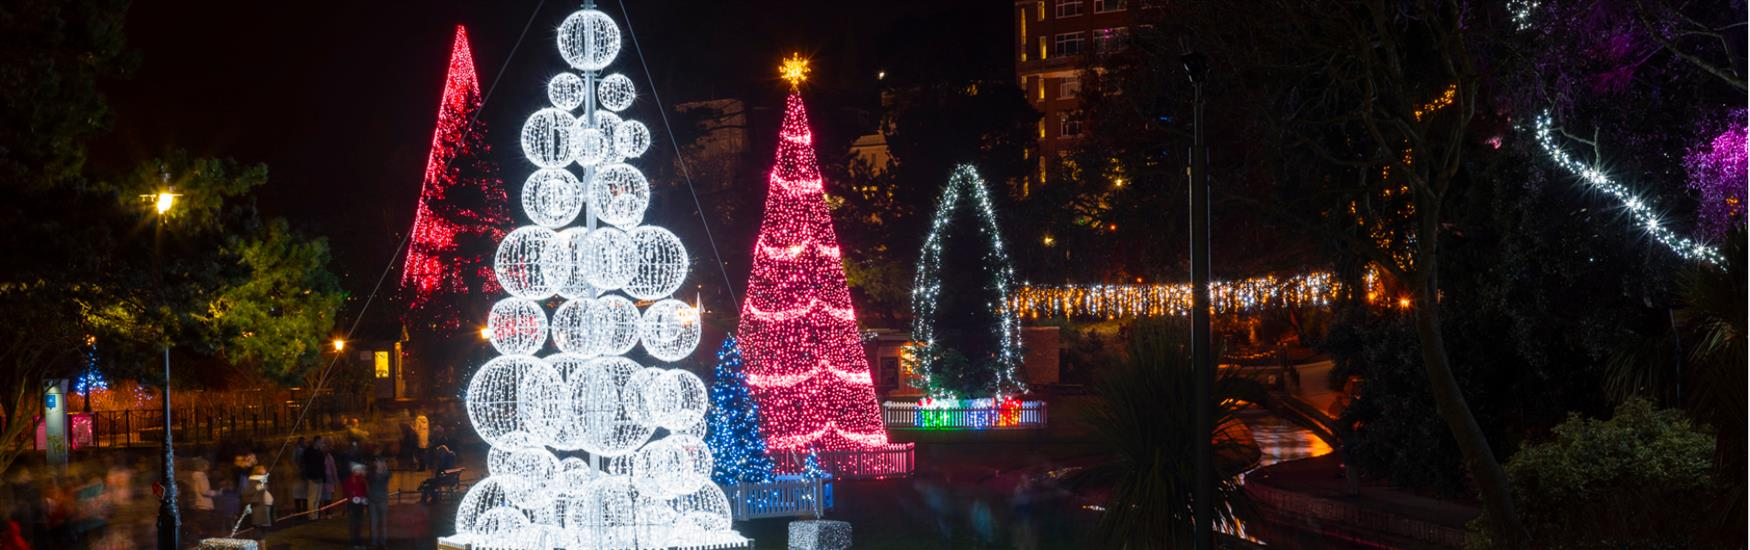 Visit the spectacular Bournemouth Christmas Tree Wonderland until 2nd January 2020